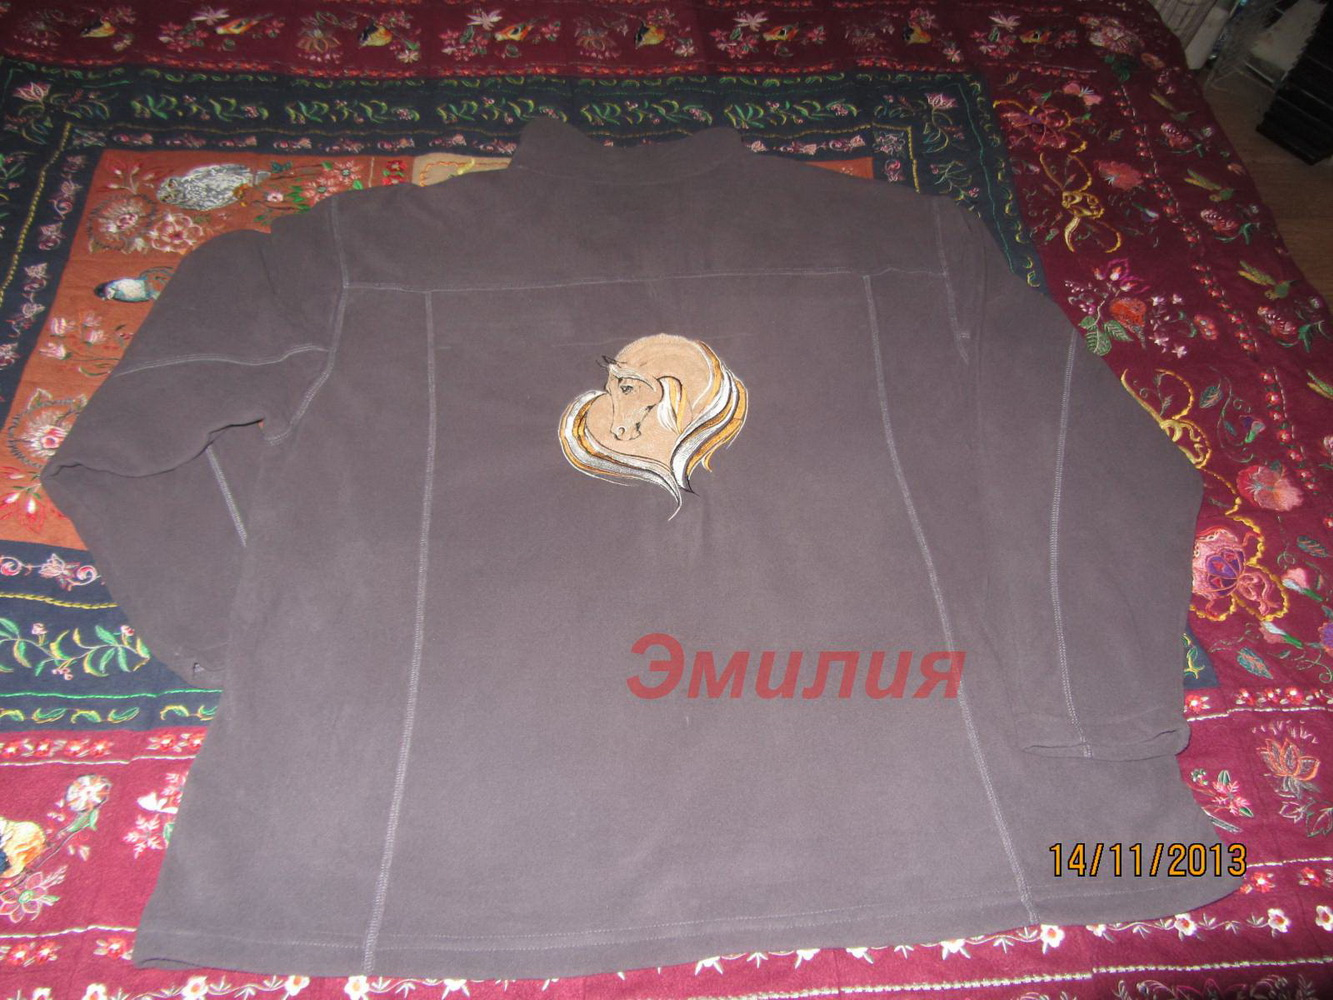 Stylish jacket embroidered with horse heart design